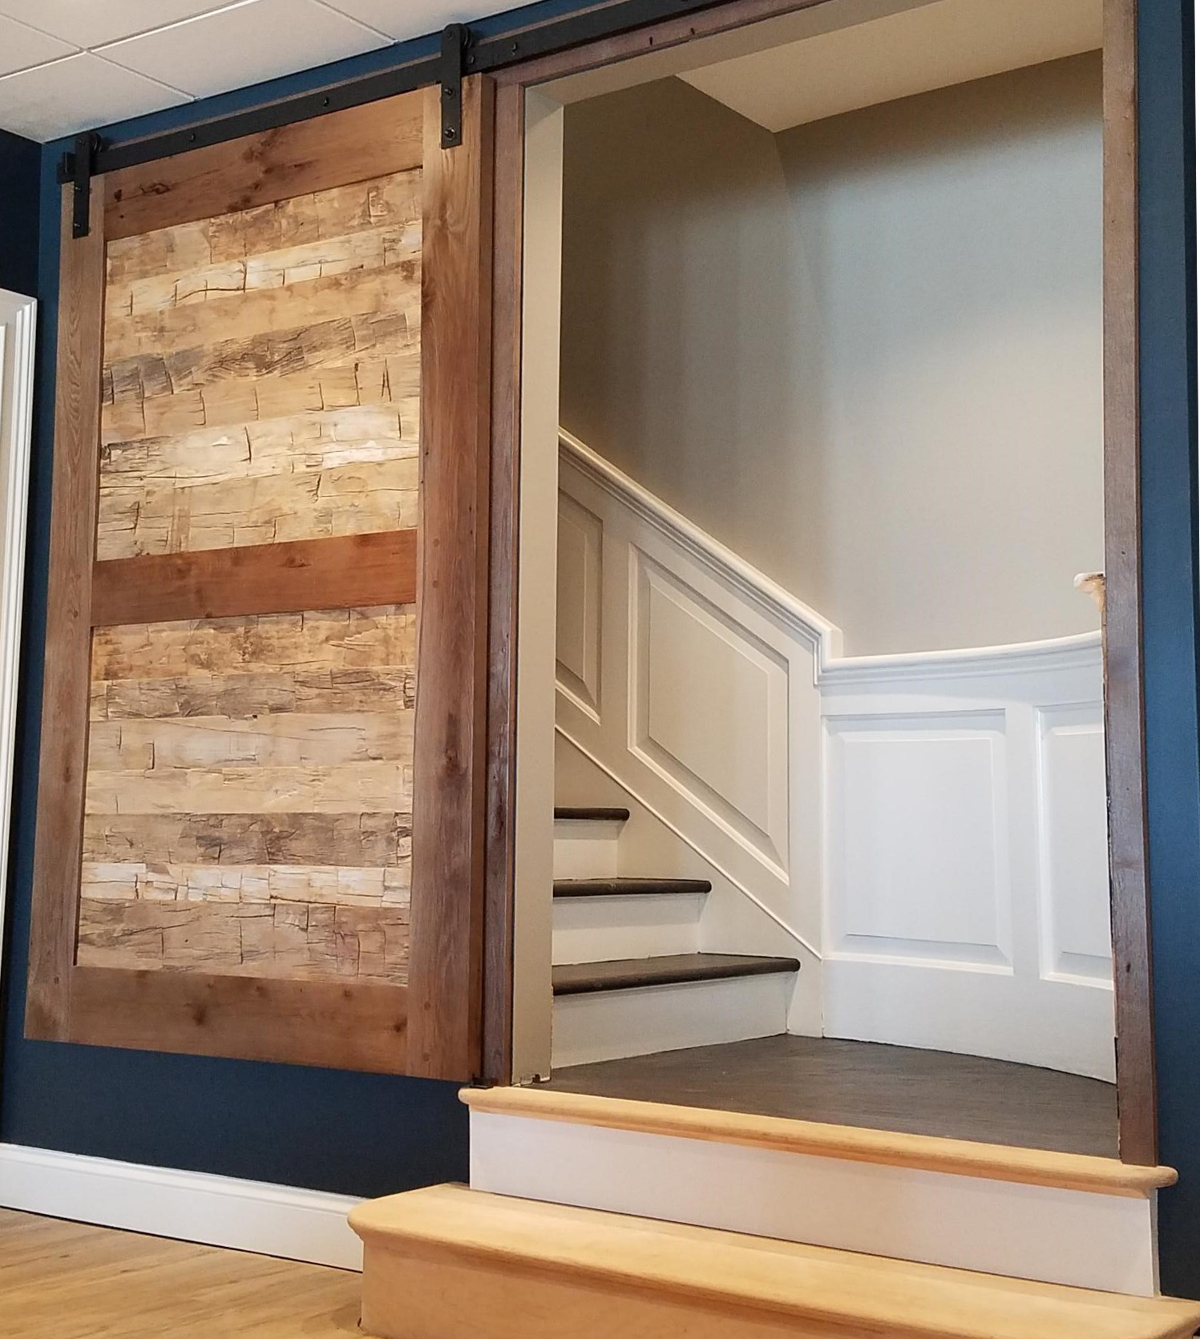 Reclaimed hand hewn timber skins bring texture and character to a lower level rec room entry.